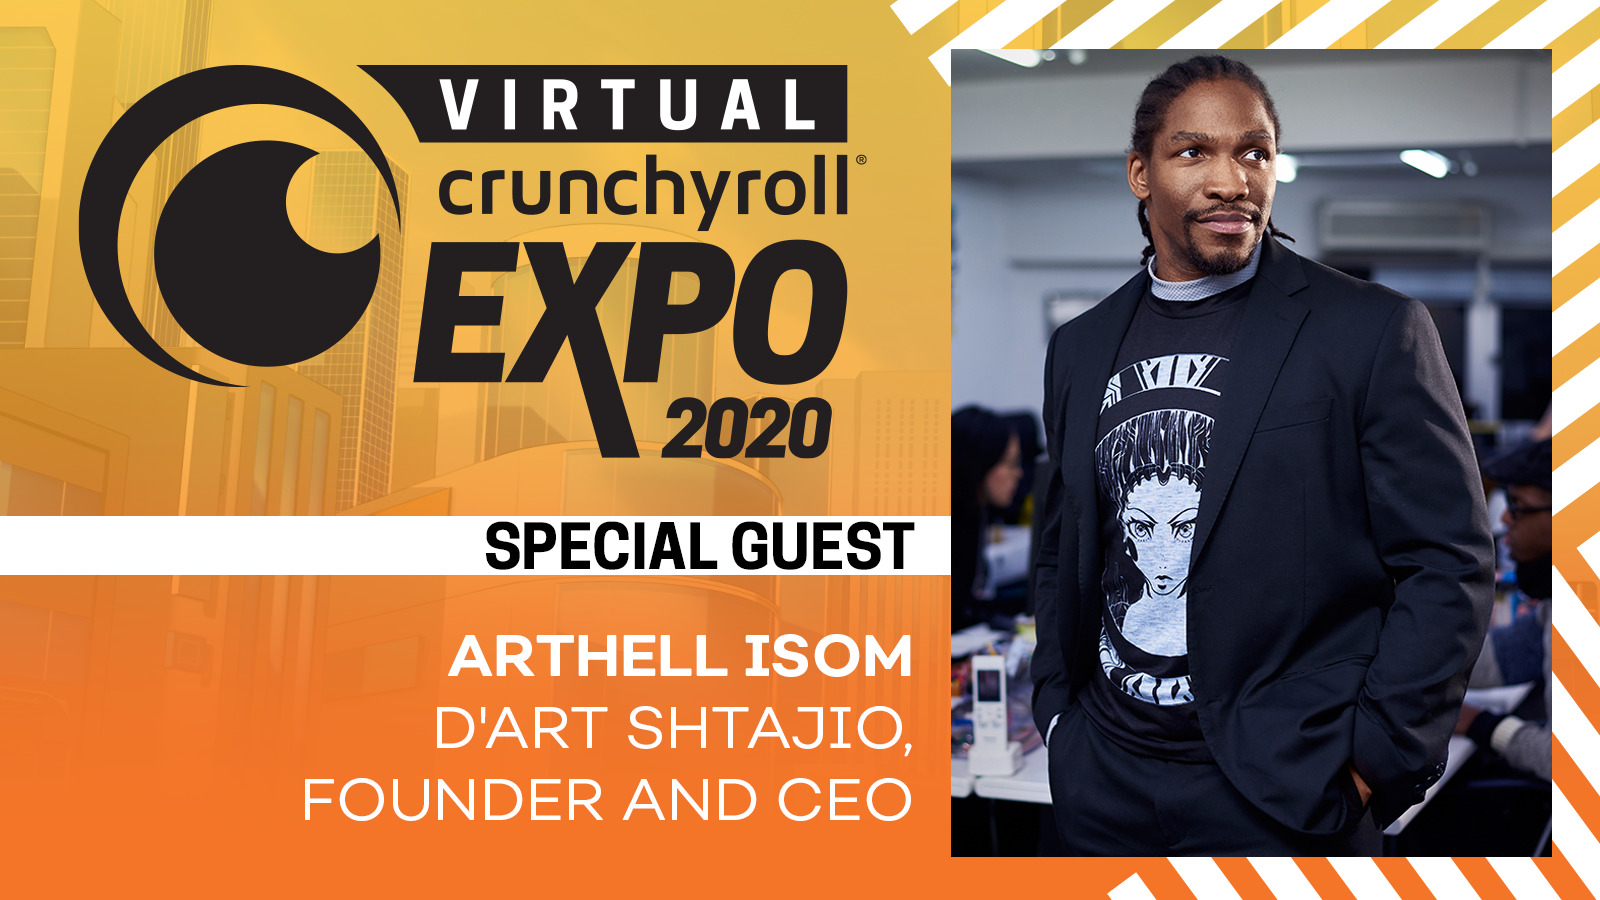 Virtual Crunchyroll Expo